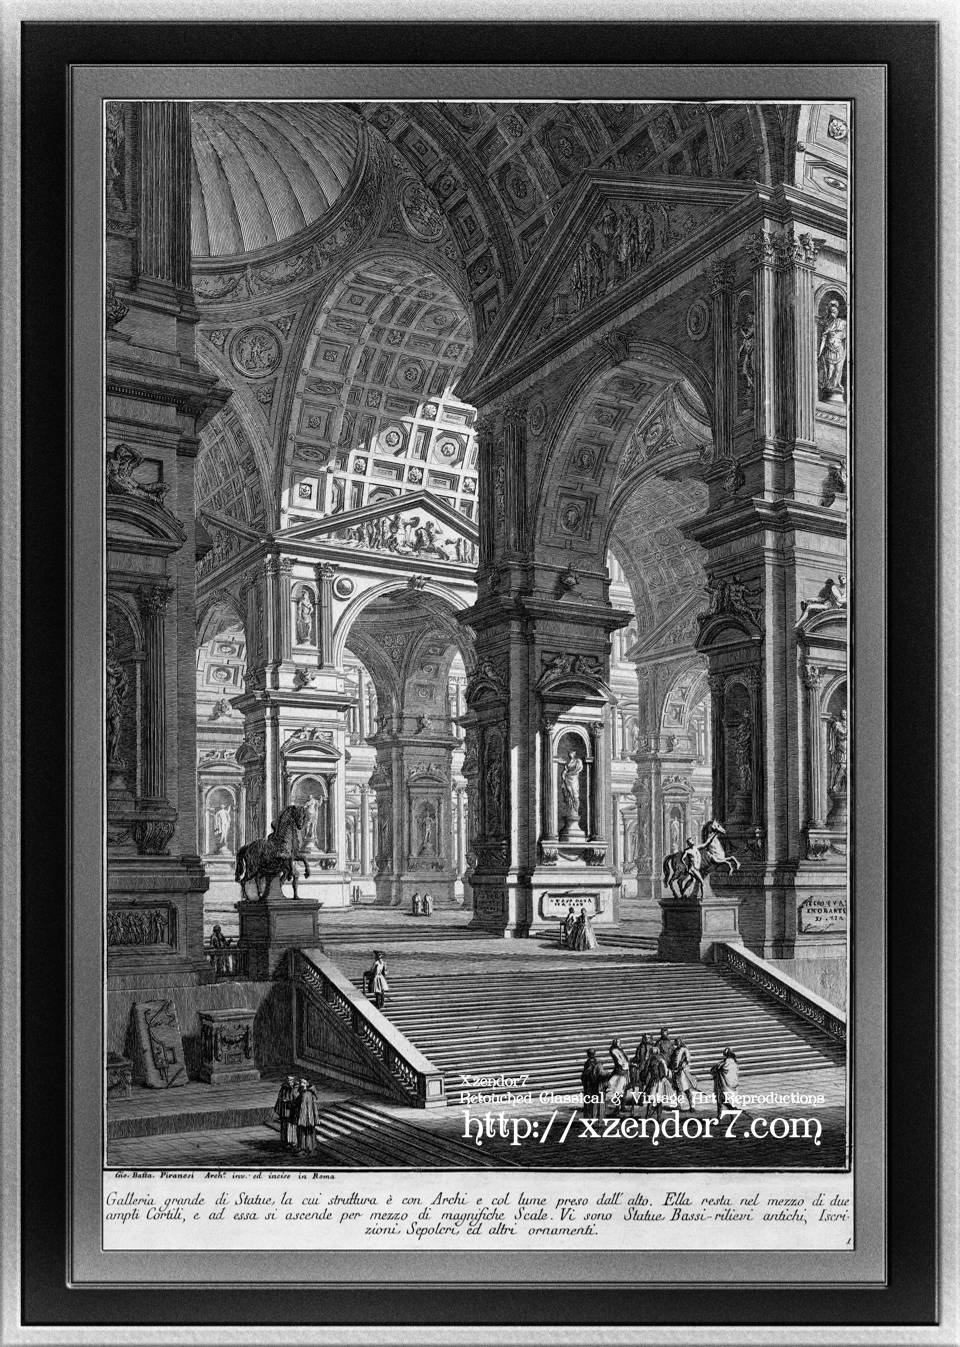 Large Sculpture Gallery Built On Arches by Giovanni Battista